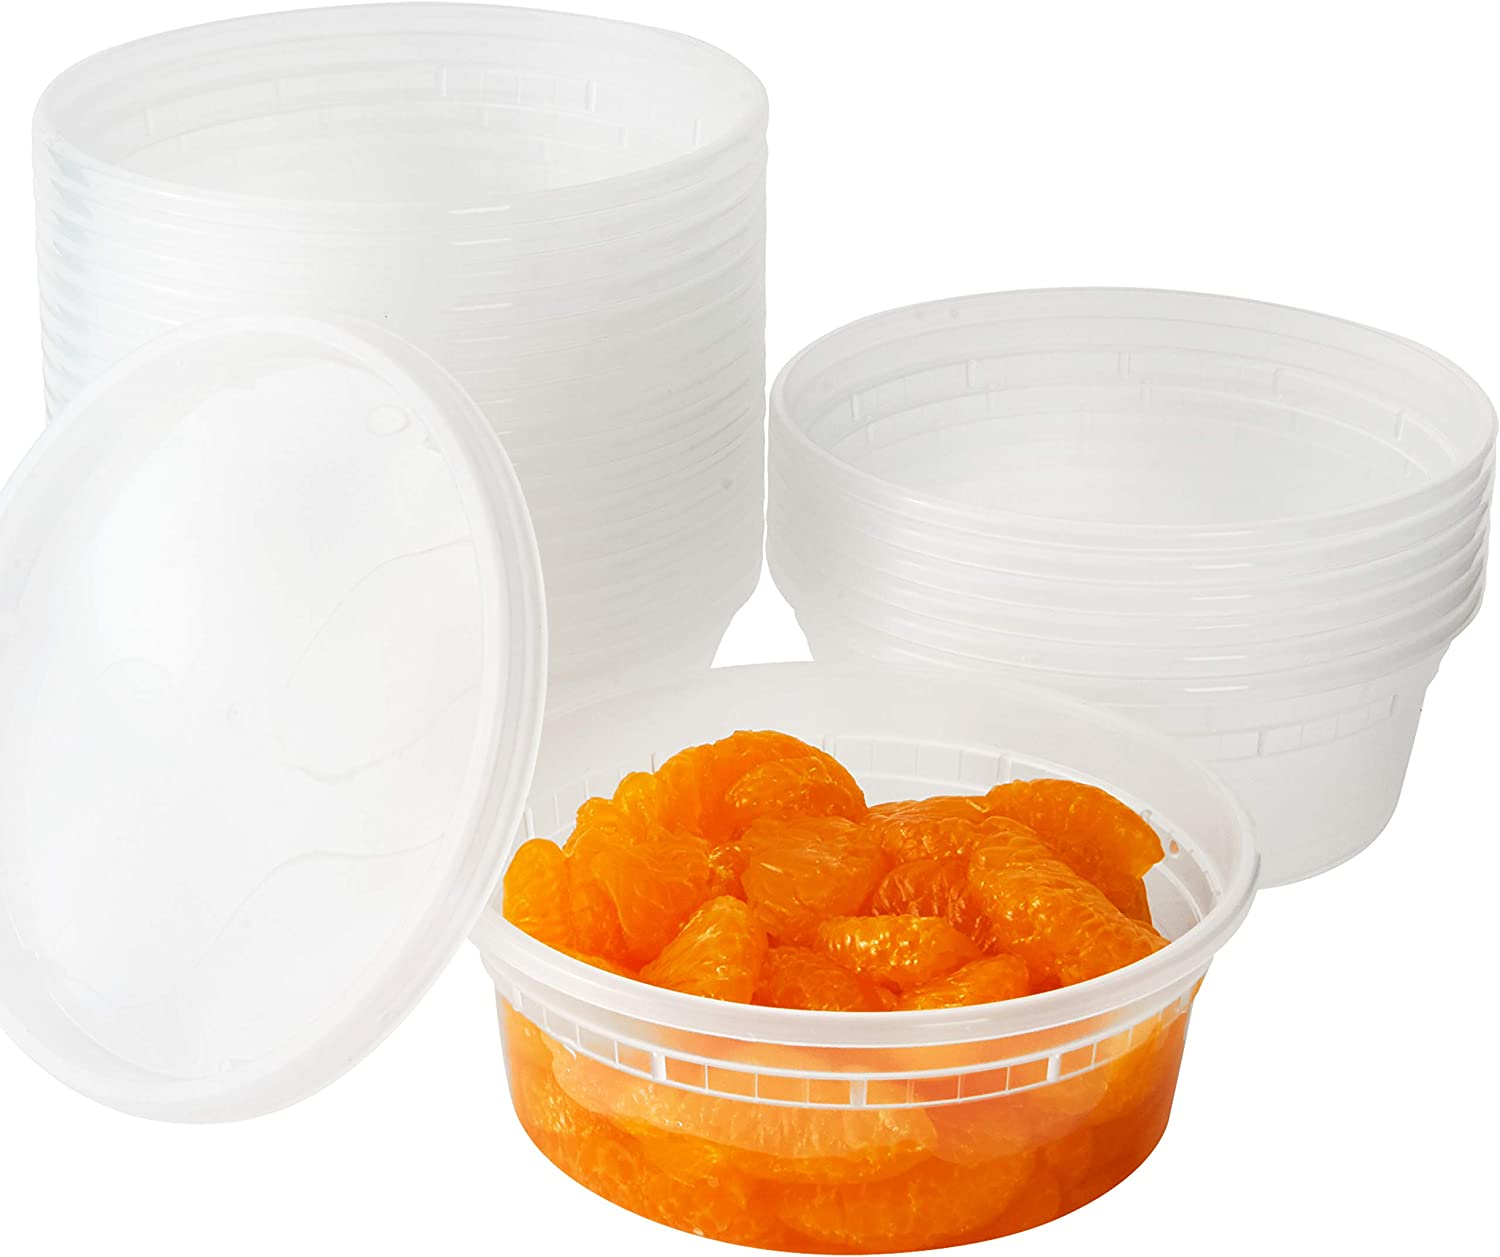 Deli Grade, BPA Free 8oz Plastic Containers with Lids, 24ct. Leakproof, Microwavable Portion Container for To-Go Orders, Food Prep and Storage. Reusable Takeout Cups for Restaurant, Cafe and Catering